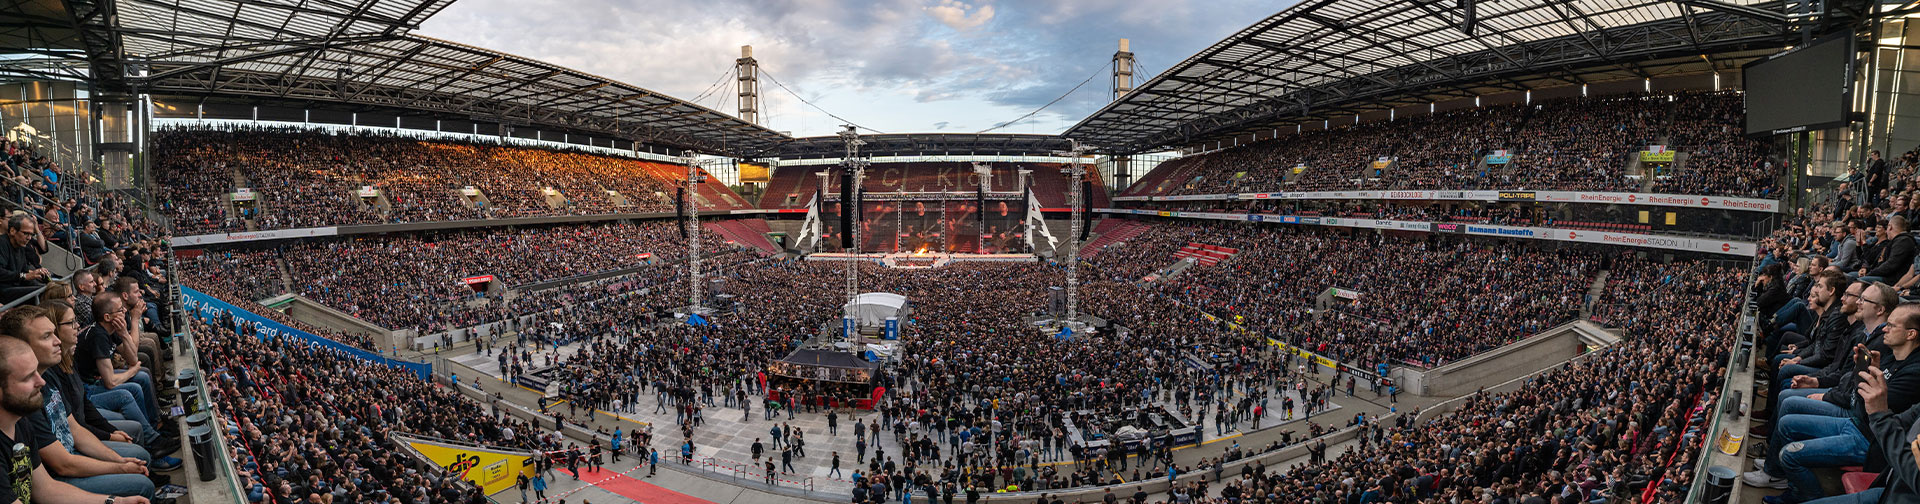 Metallica at RheinEnergieStadion in Cologne, Germany on June